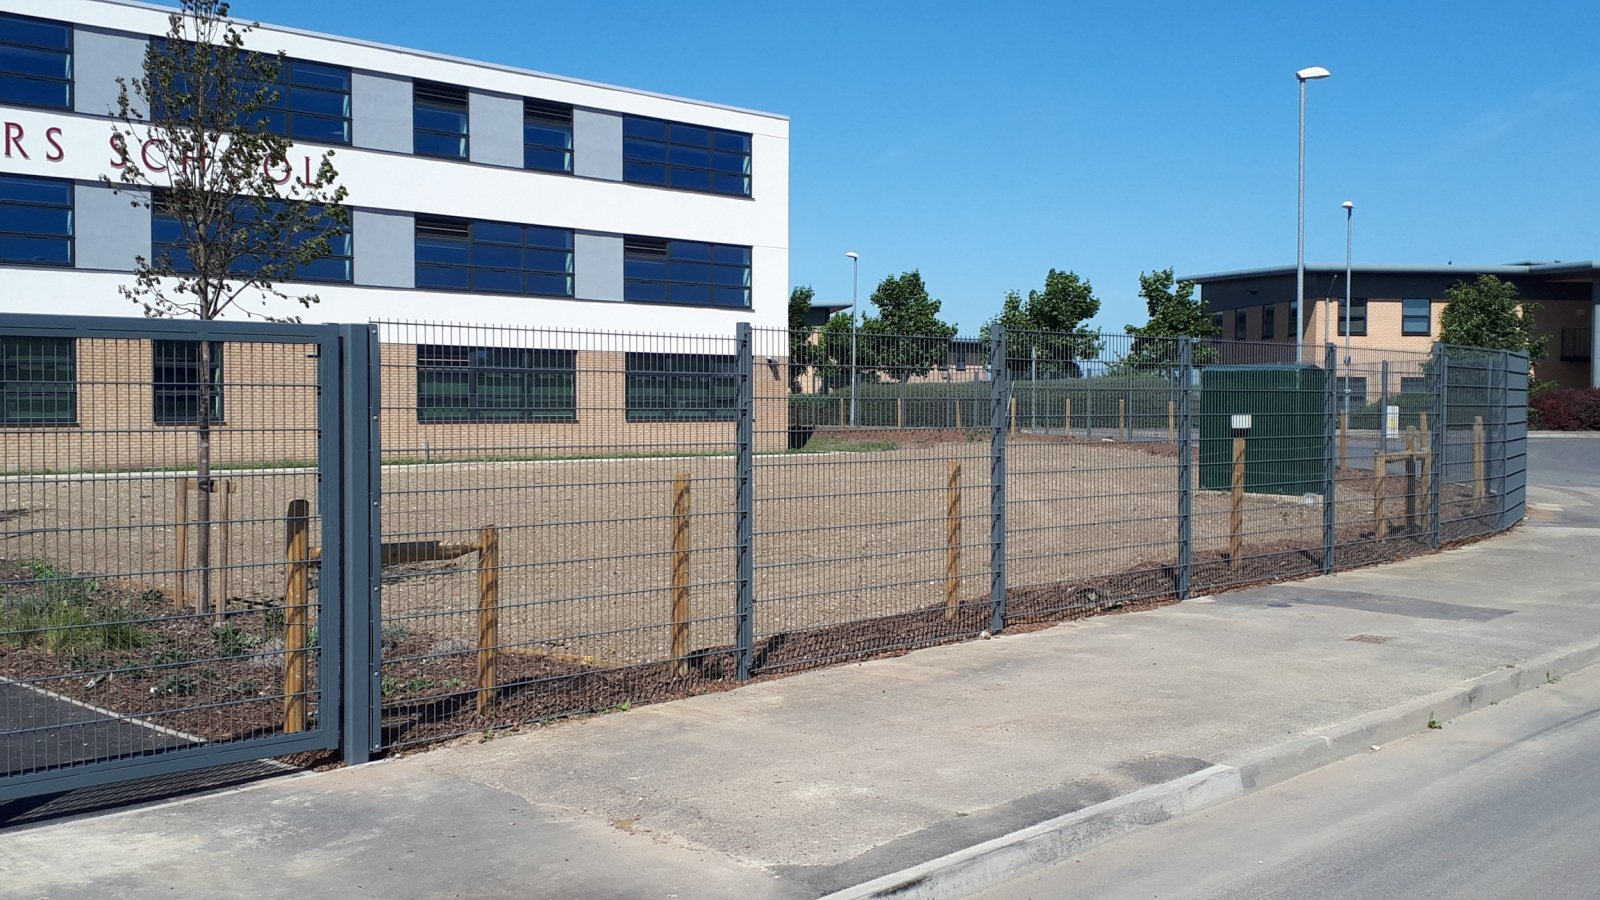 Secure-a-Field install fencing at brand new Nottinghamshire Academy